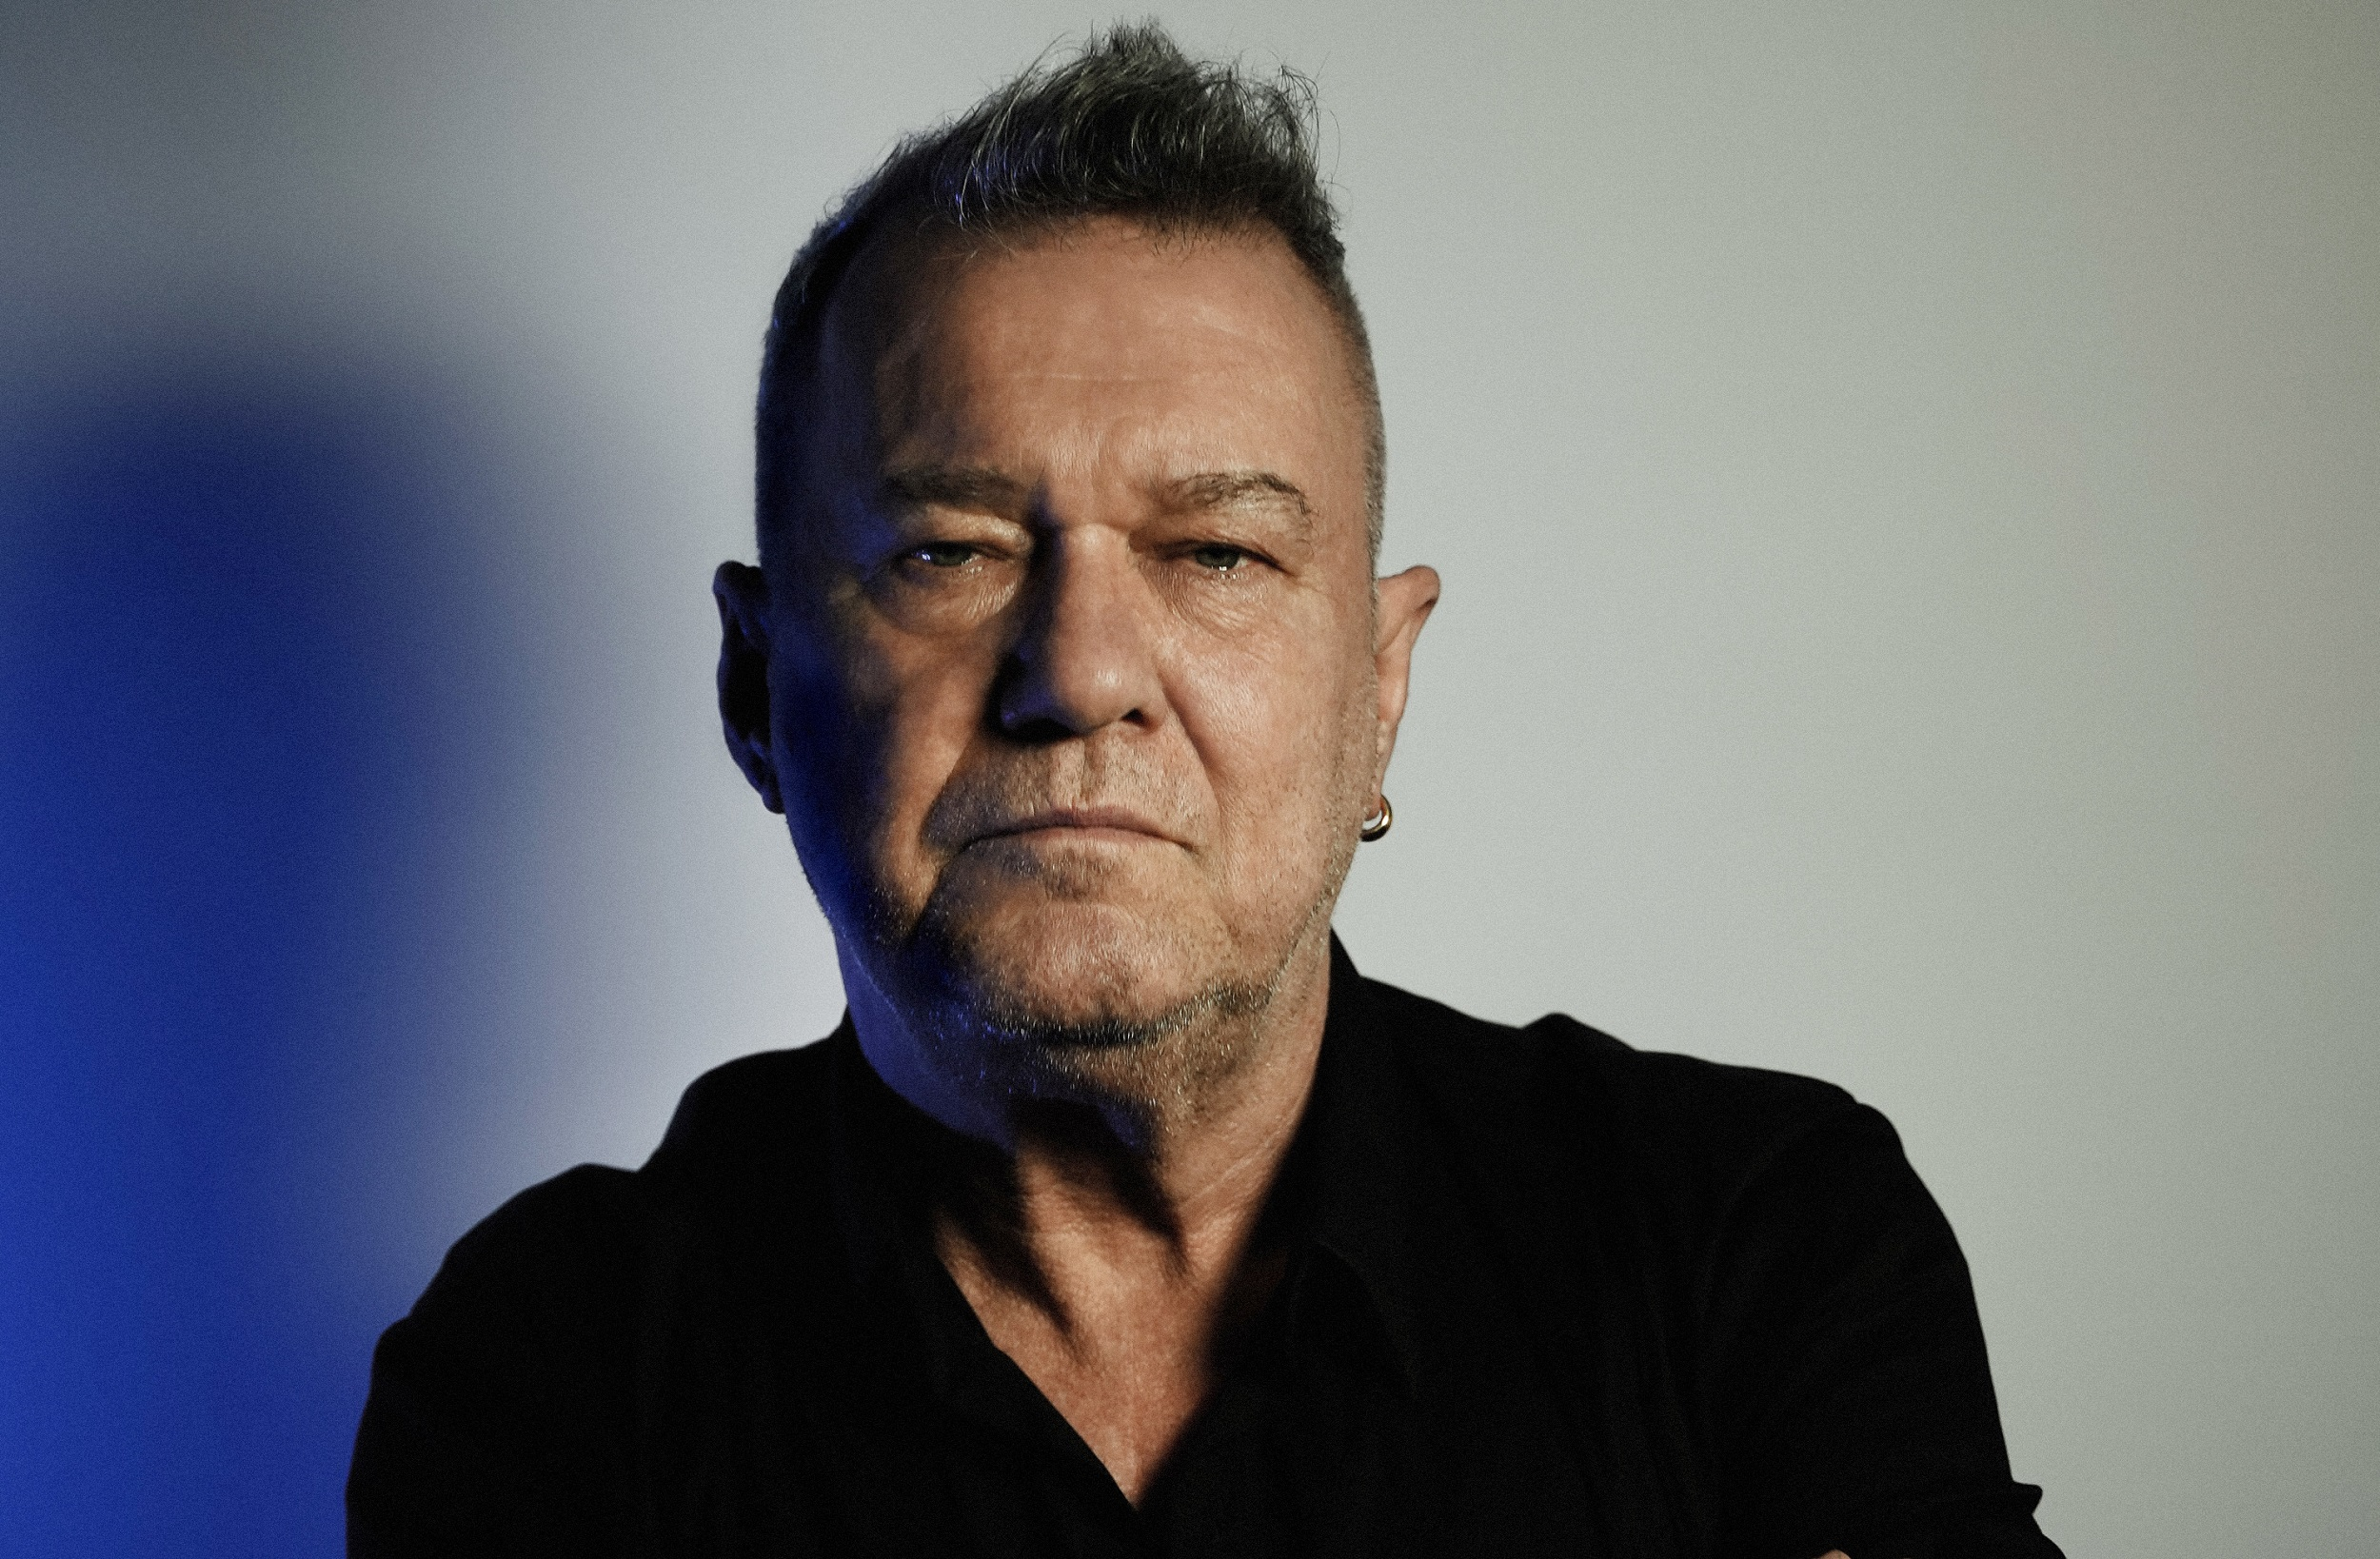 Jimmy Barnes To Feature Alongside Madonna & More As Part Of MTV's 40th Anniversary Celebrations